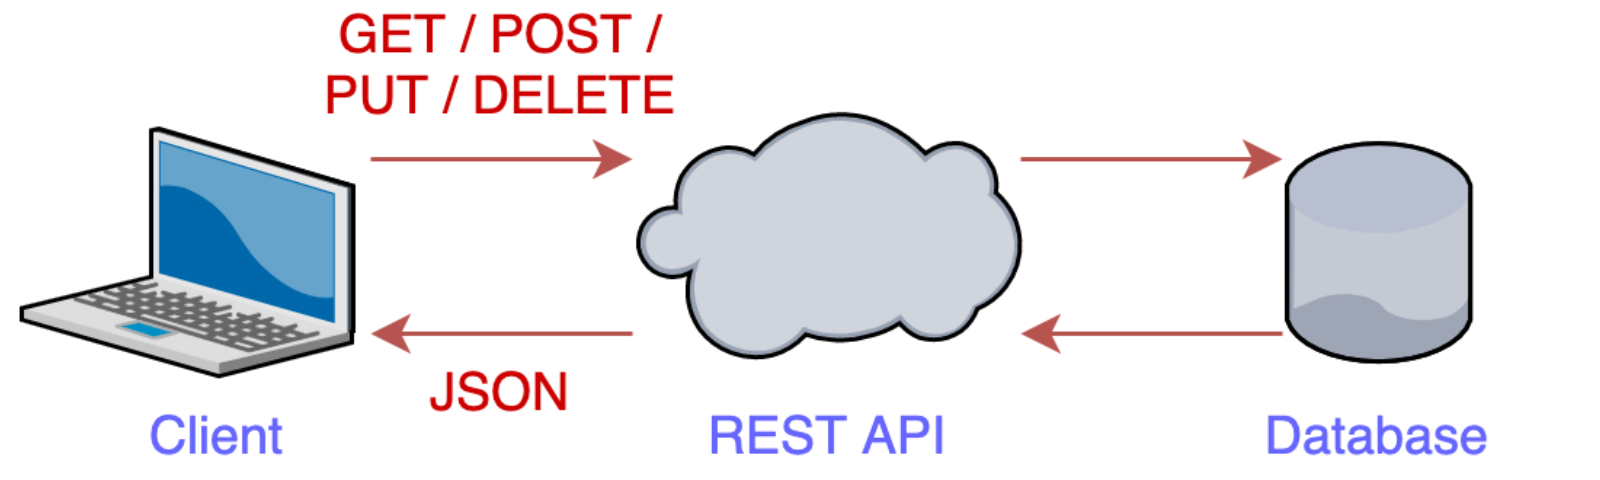 REST API using POST instead of GET